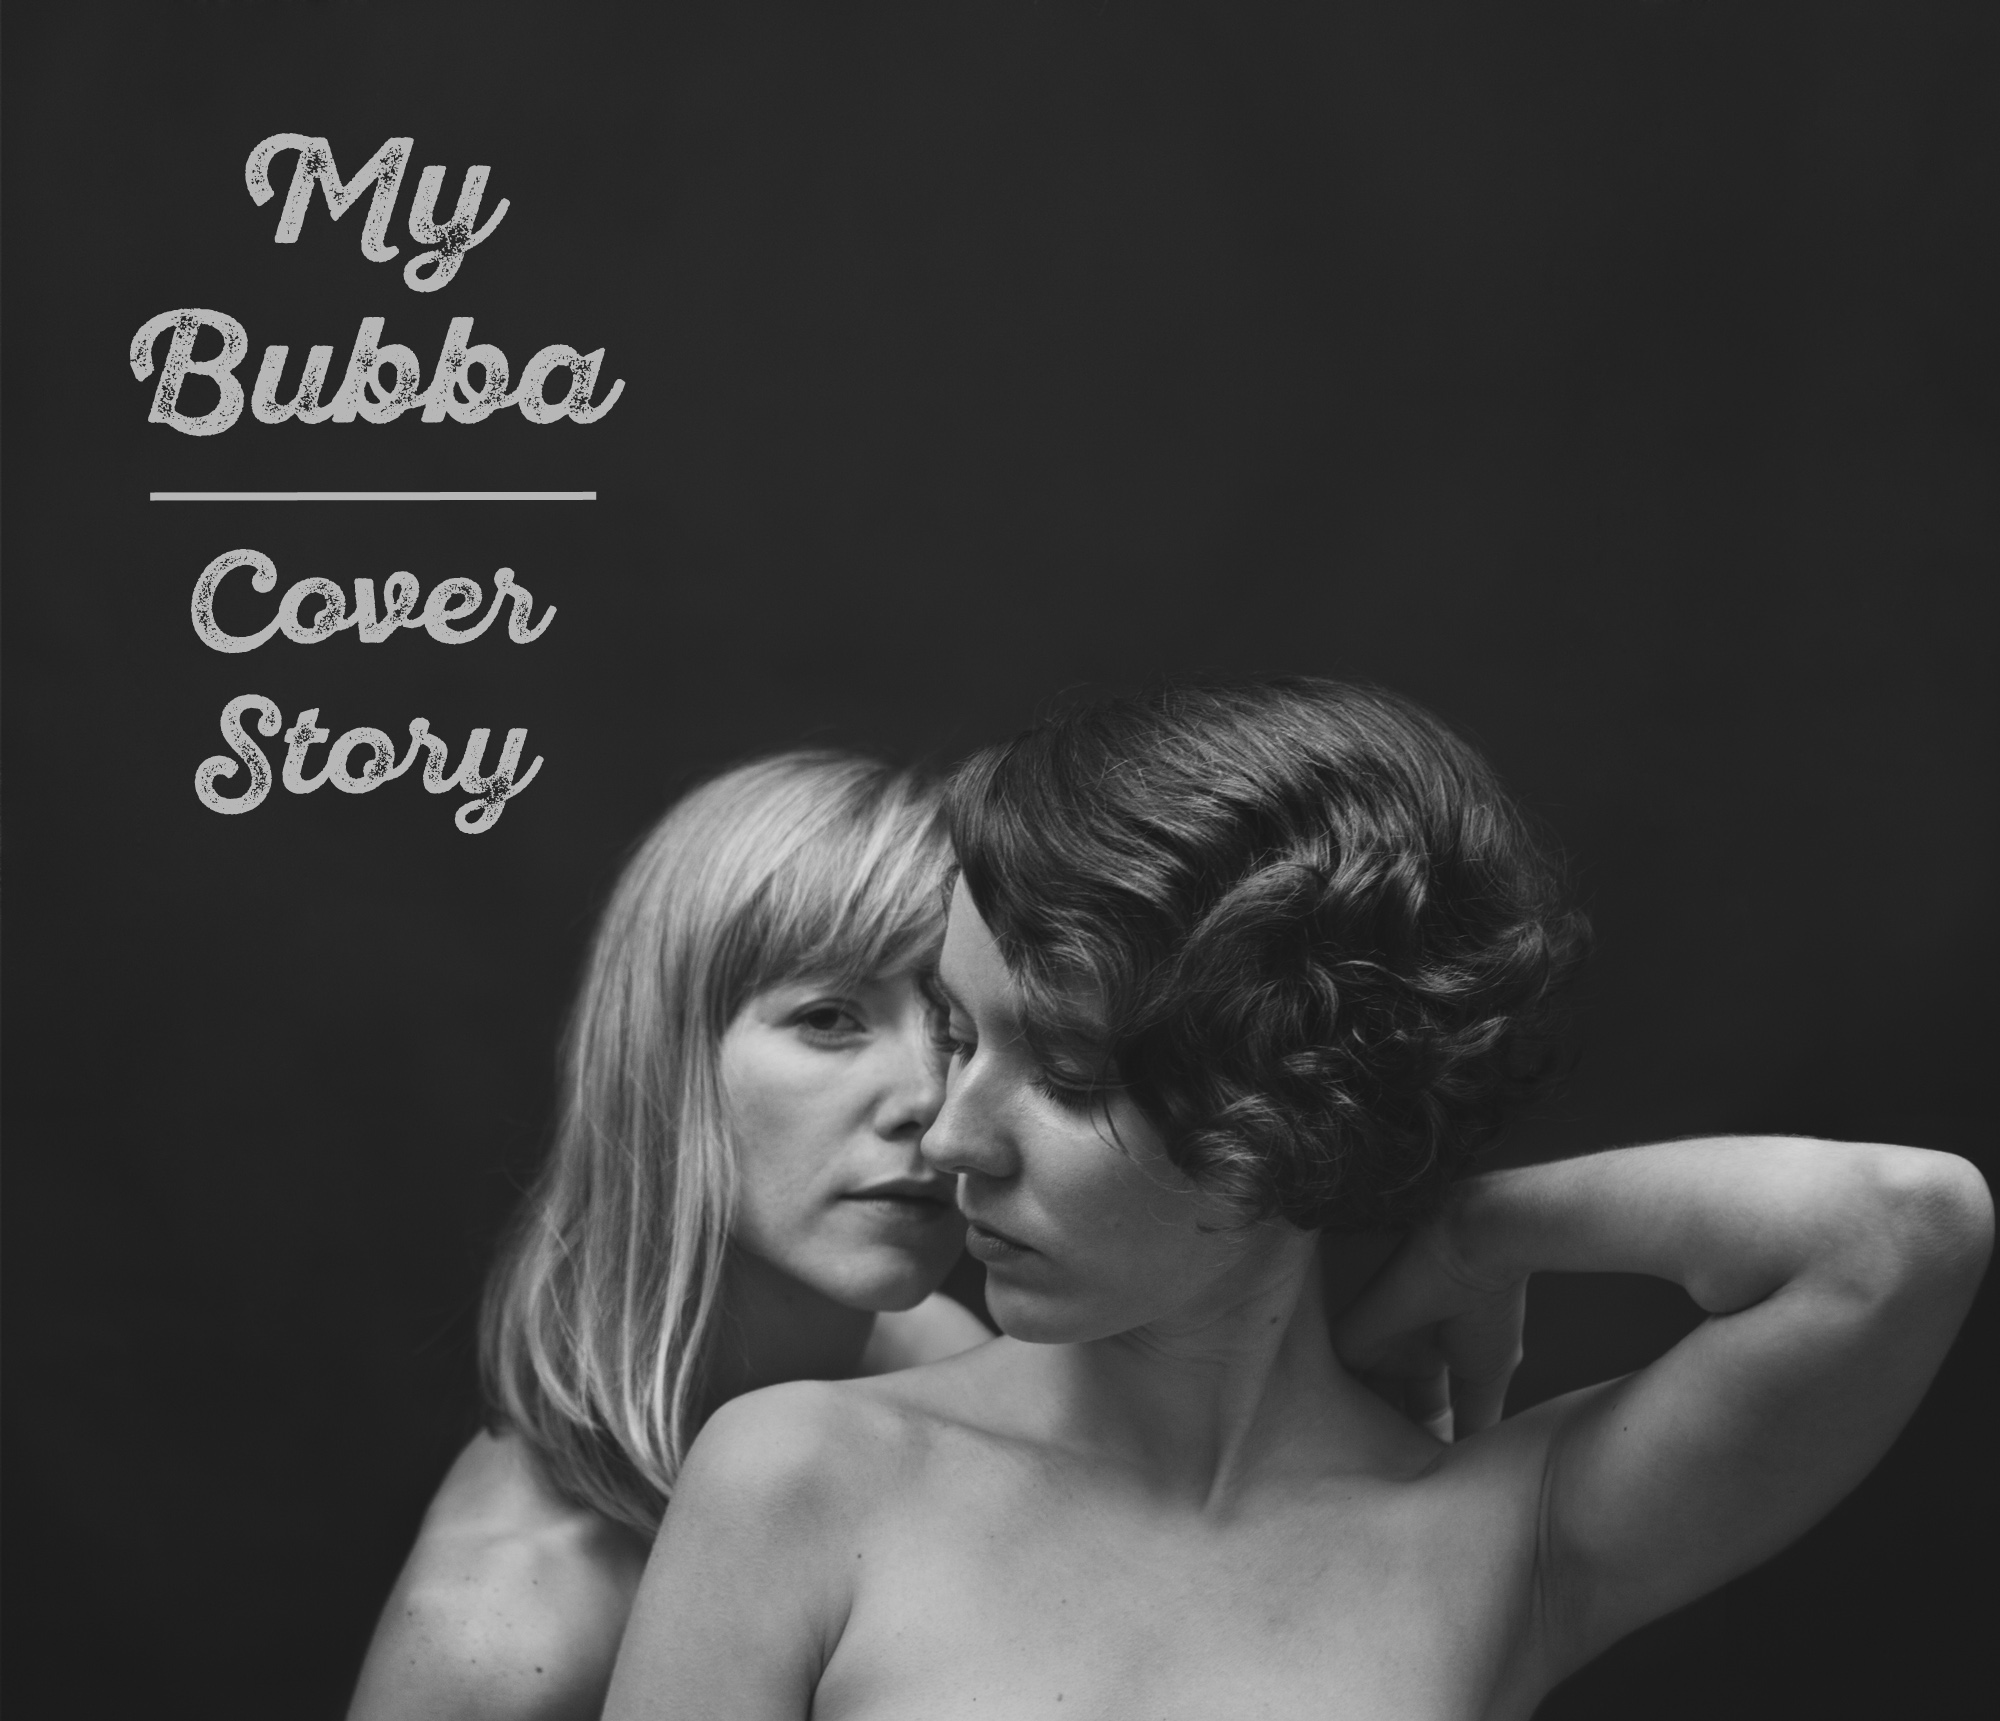 A Place in the Chain of Stories: A Conversation with My Bubba